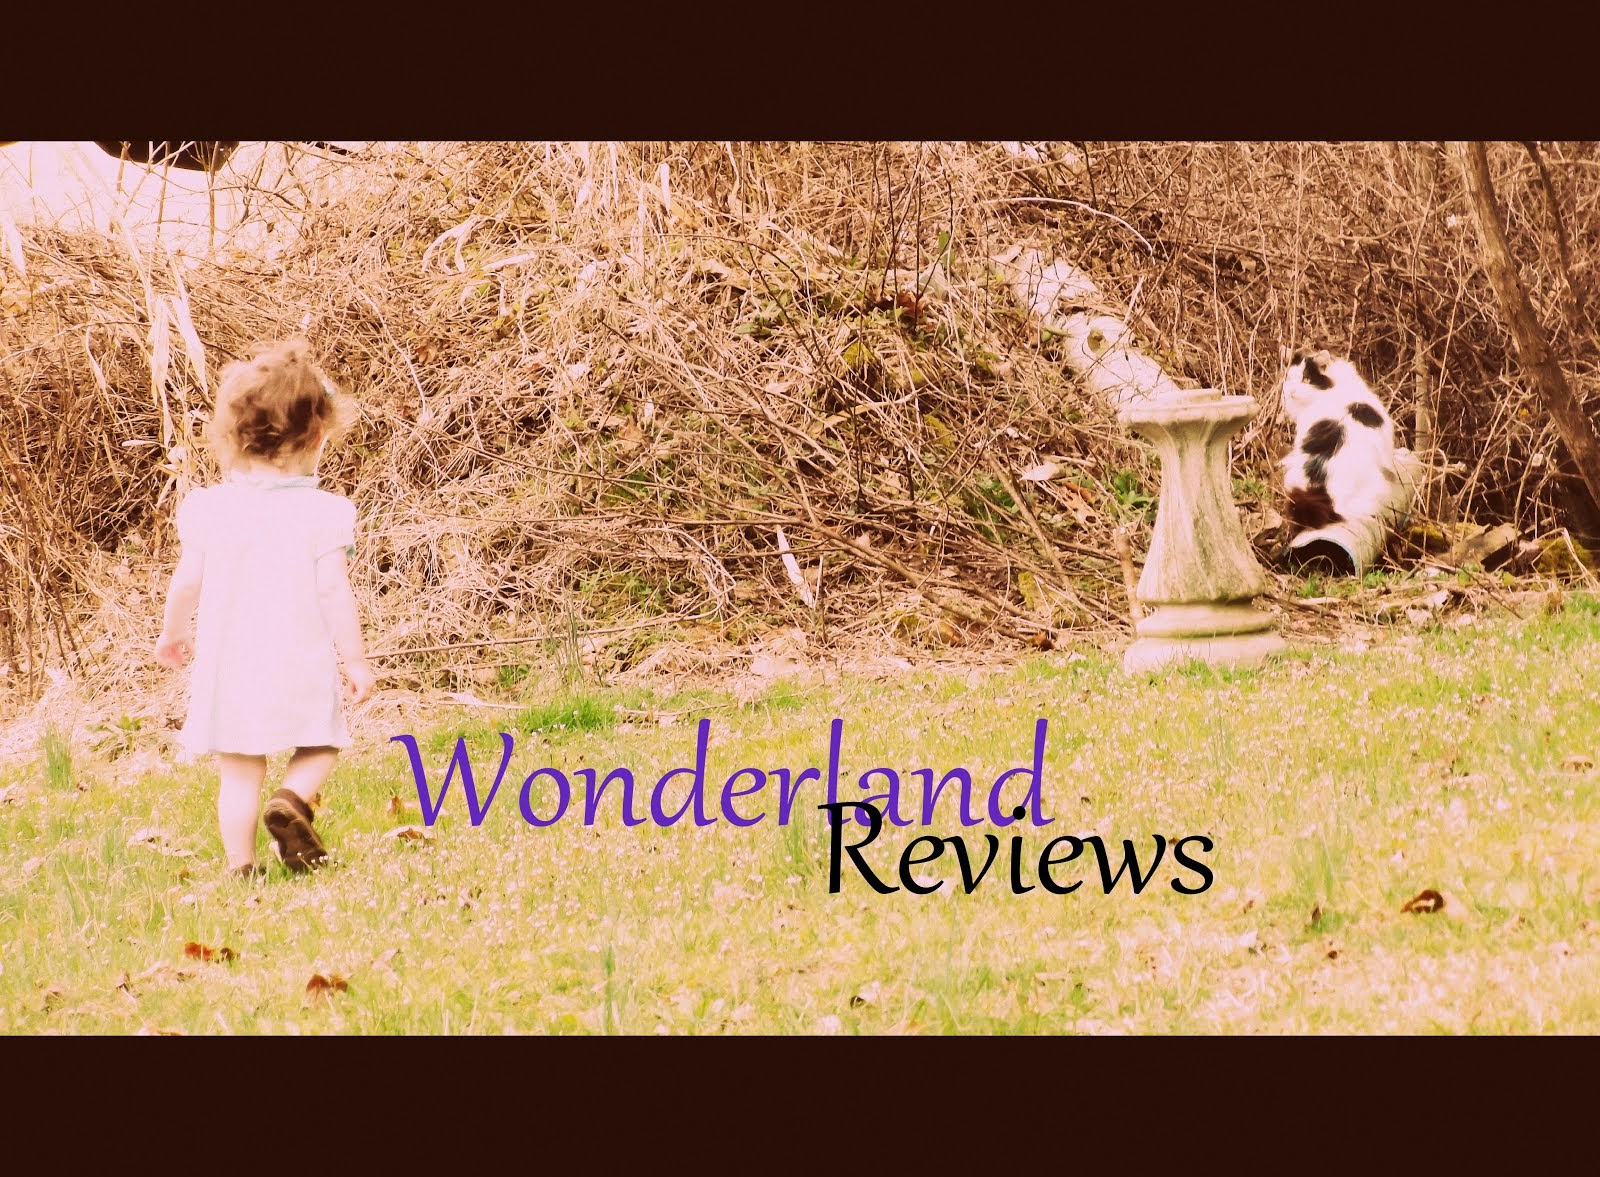 WONDERLAND REVIEWS